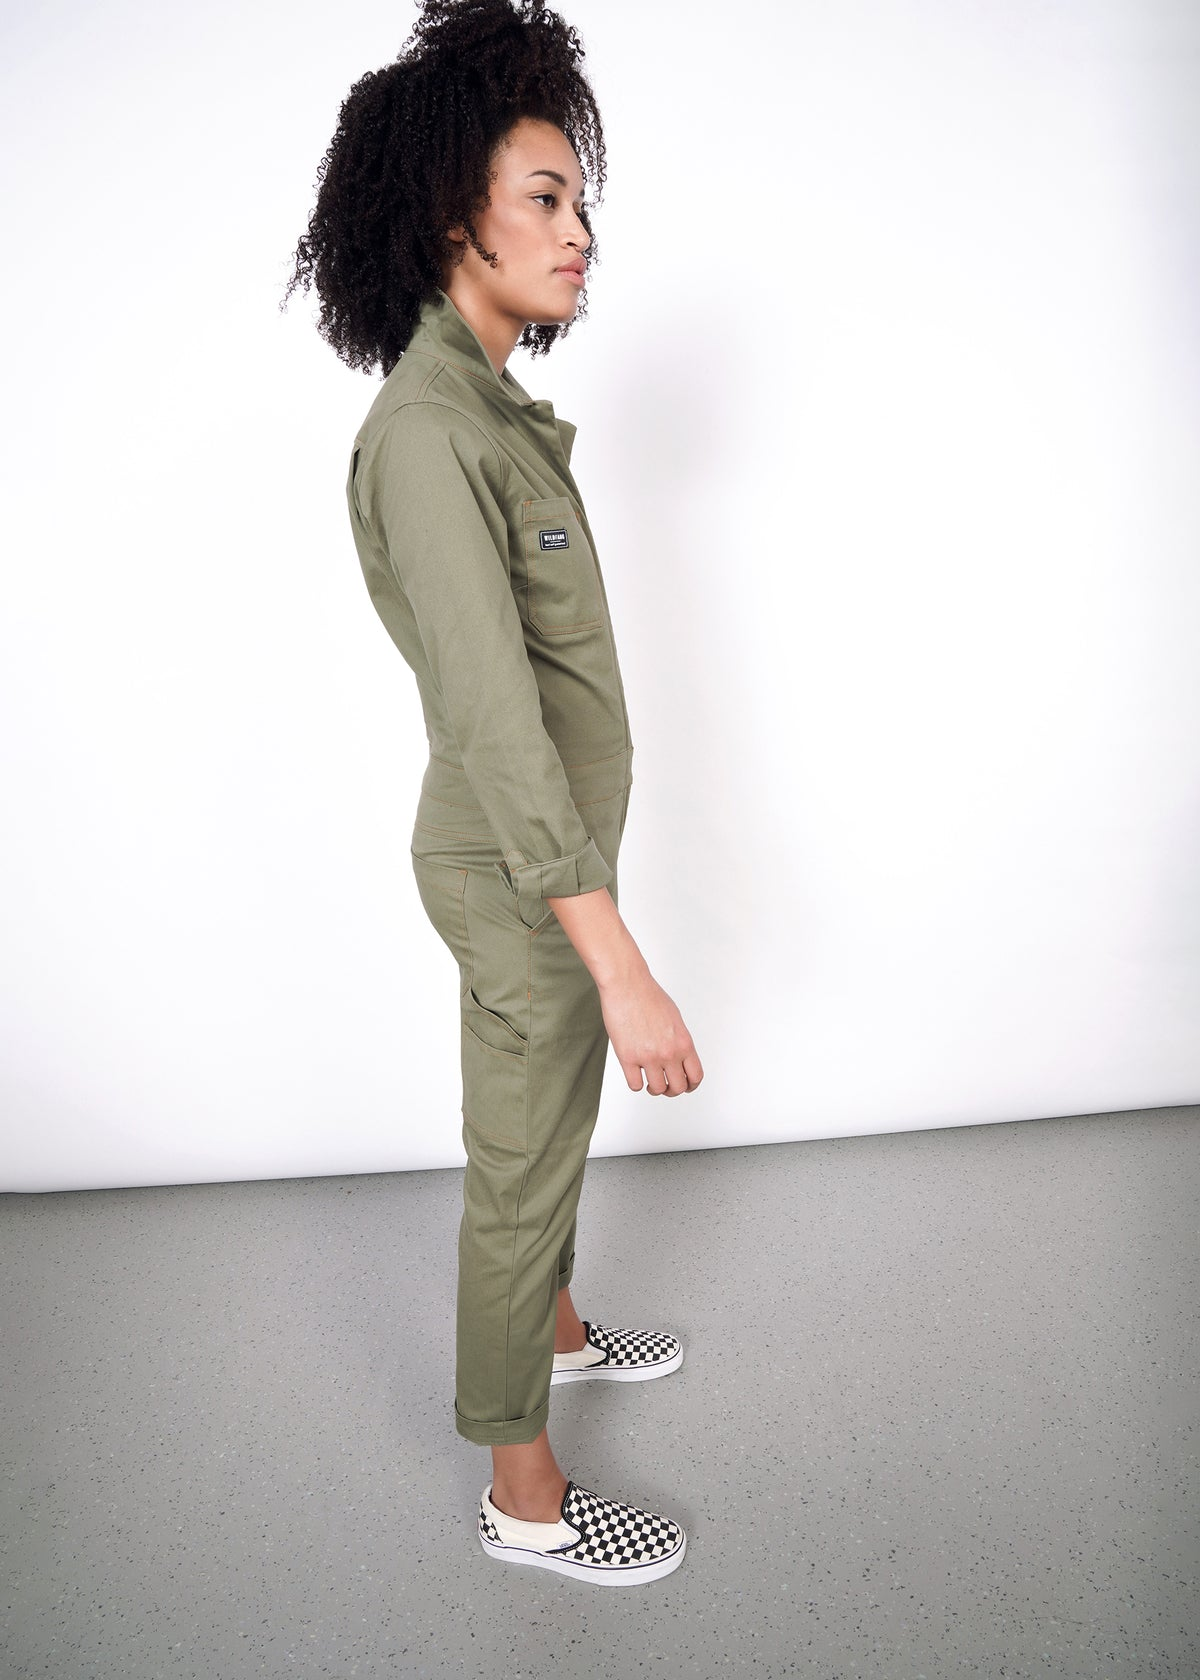 Model wearing olive coverall in size small, showing side body view